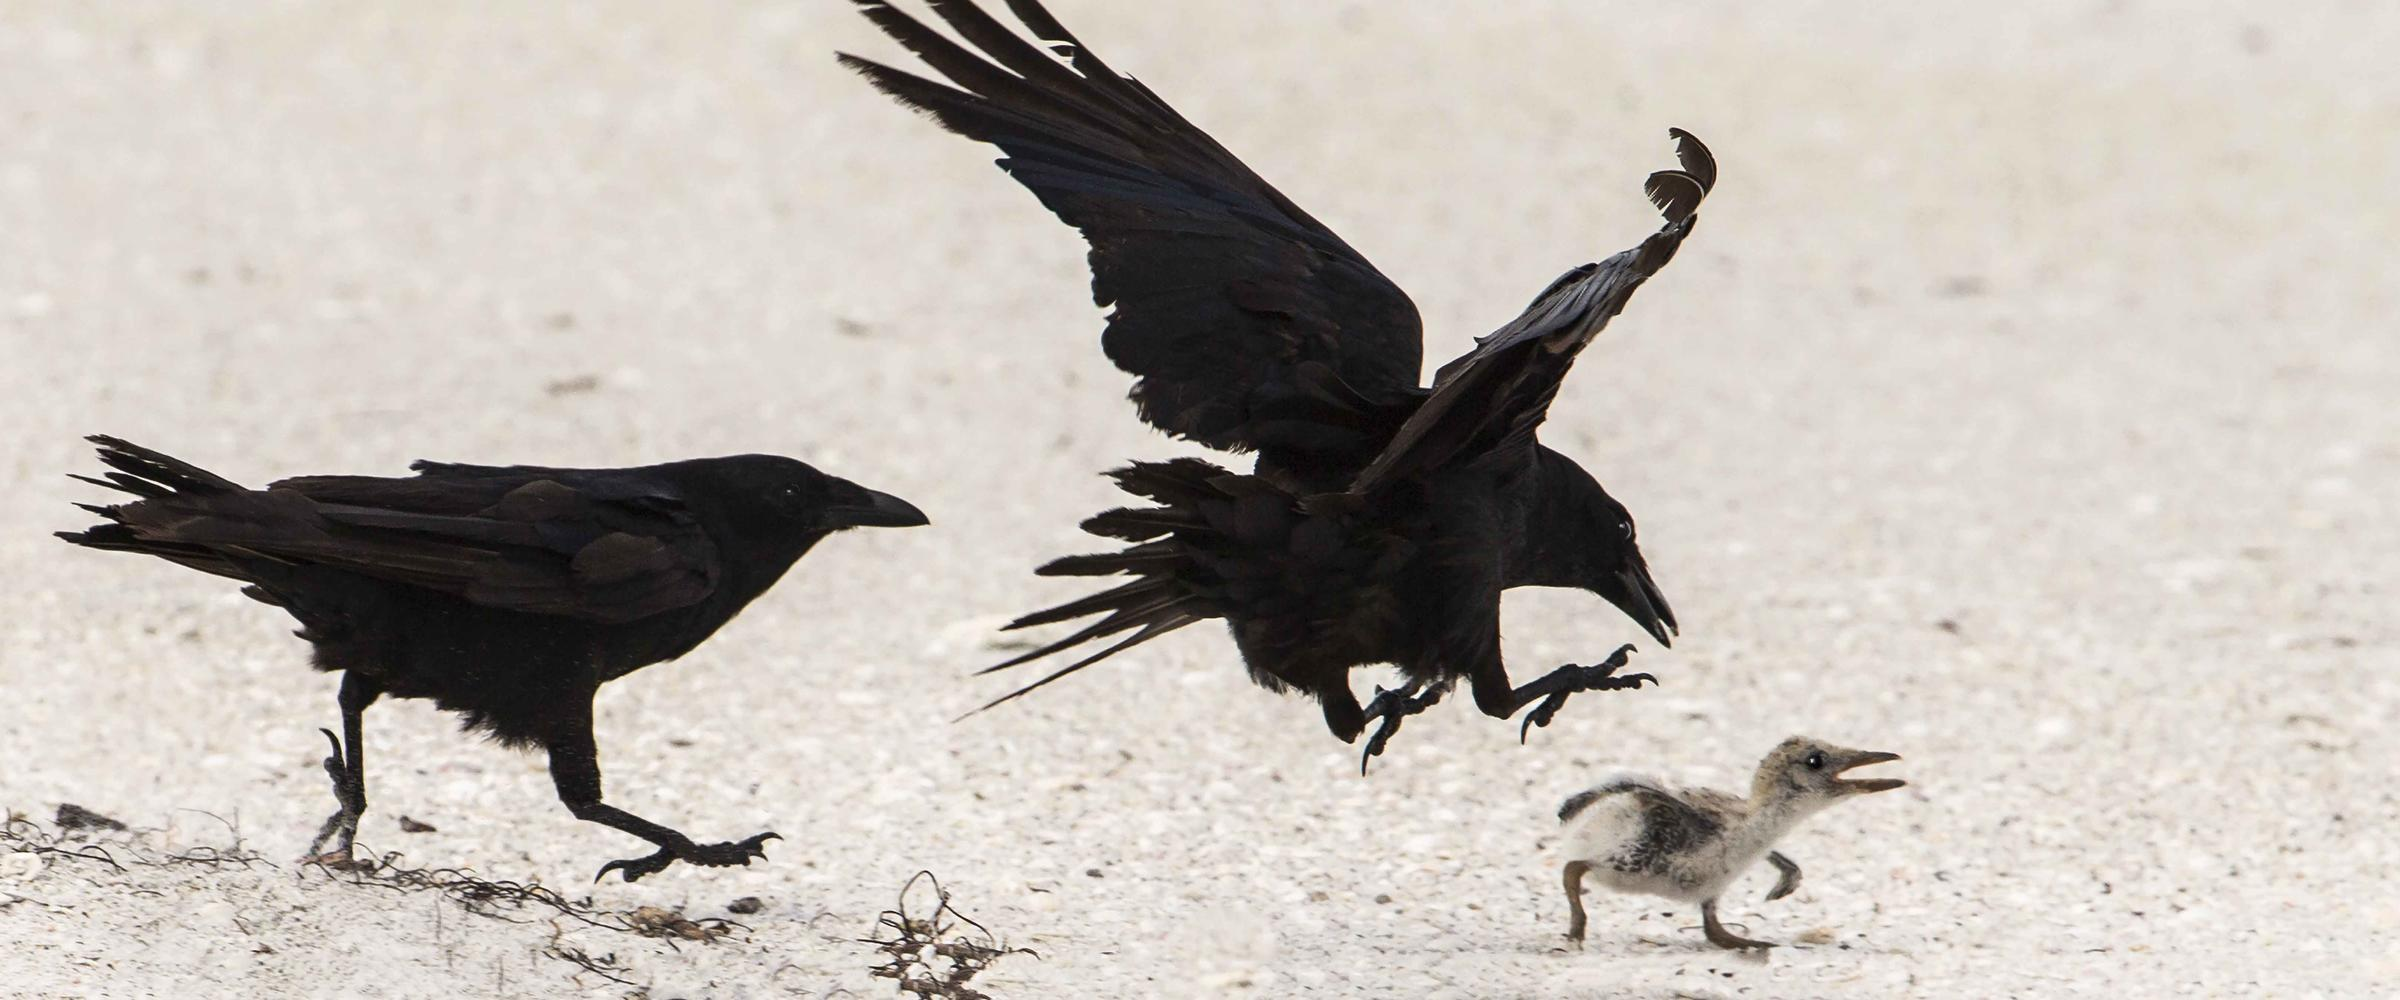 Fish crow preying on chick